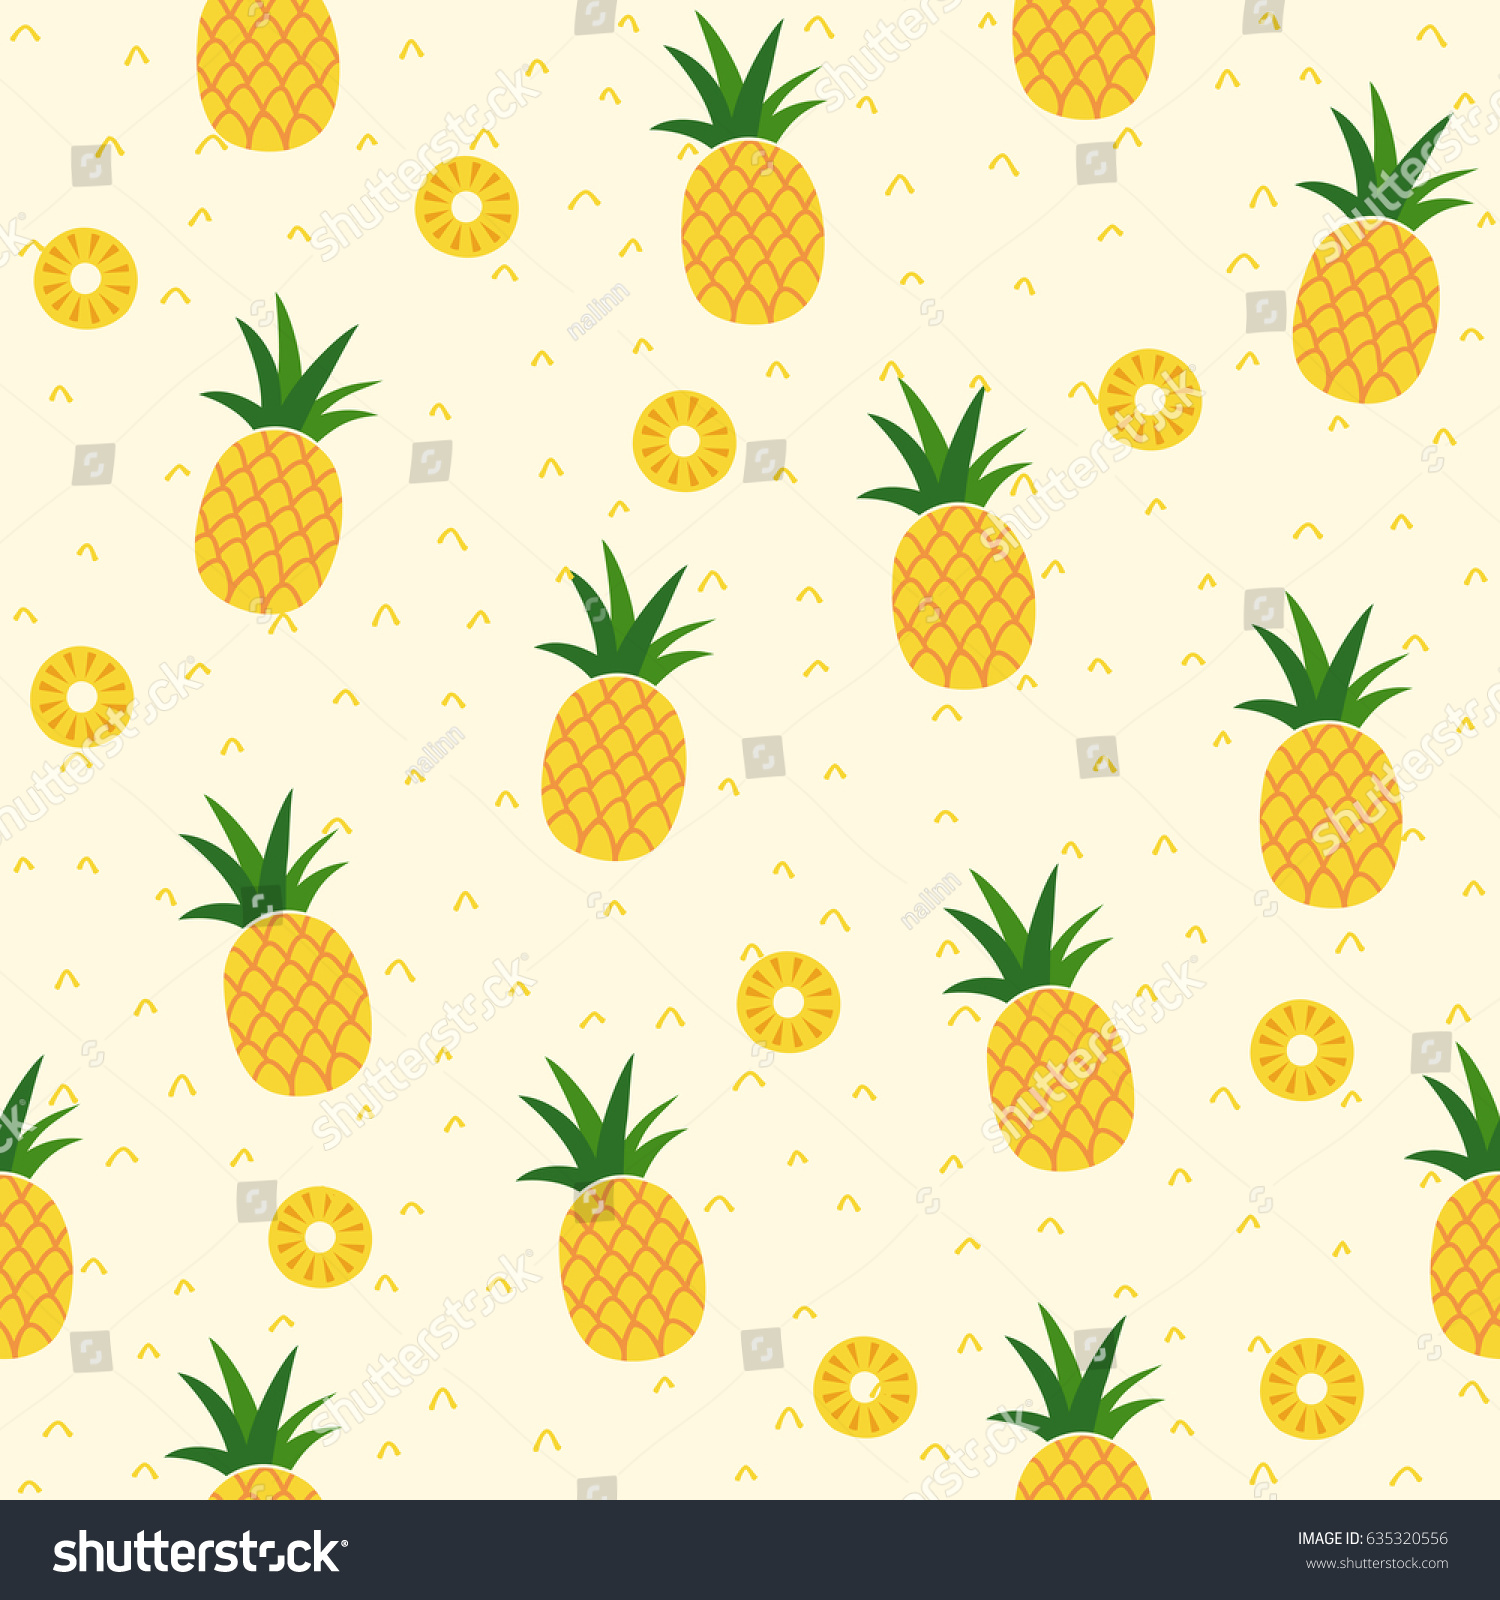 Most Inspiring Wallpaper Macbook Pineapple - stock-vector-seamless-pineapple-pattern-for-textile-fabric-or-wallpaper-backgrounds-635320556  You Should Have_419387.jpg